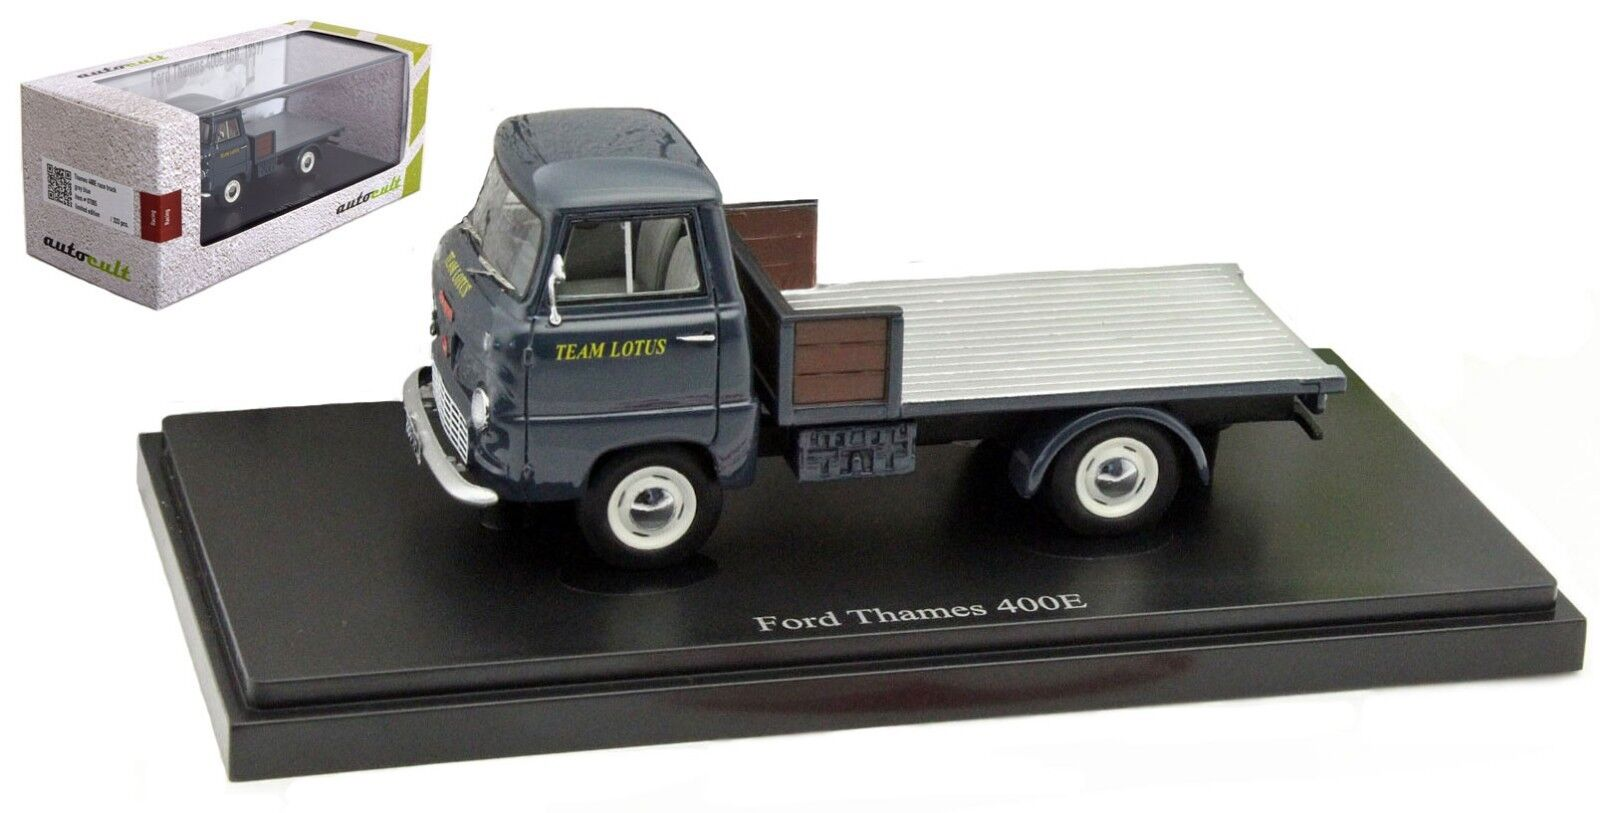 Autocult Ford Thames 400E 'Team Lotus' Support Support Support Vehicle 1950s 60s - 1 43 Scale 38210d